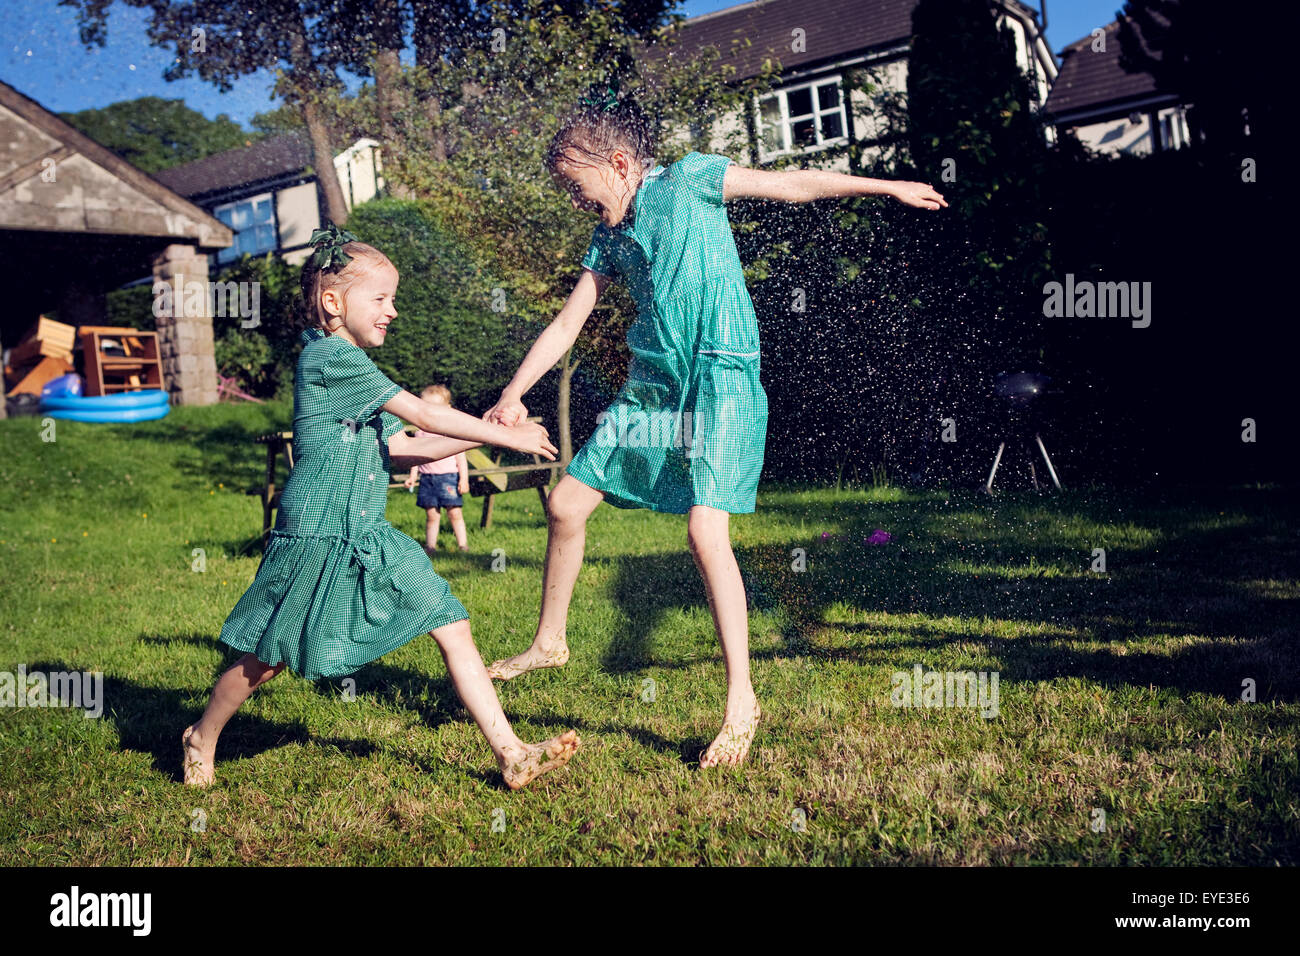 Two children in school summer dresses, running through a water sprinkler. - Stock Image